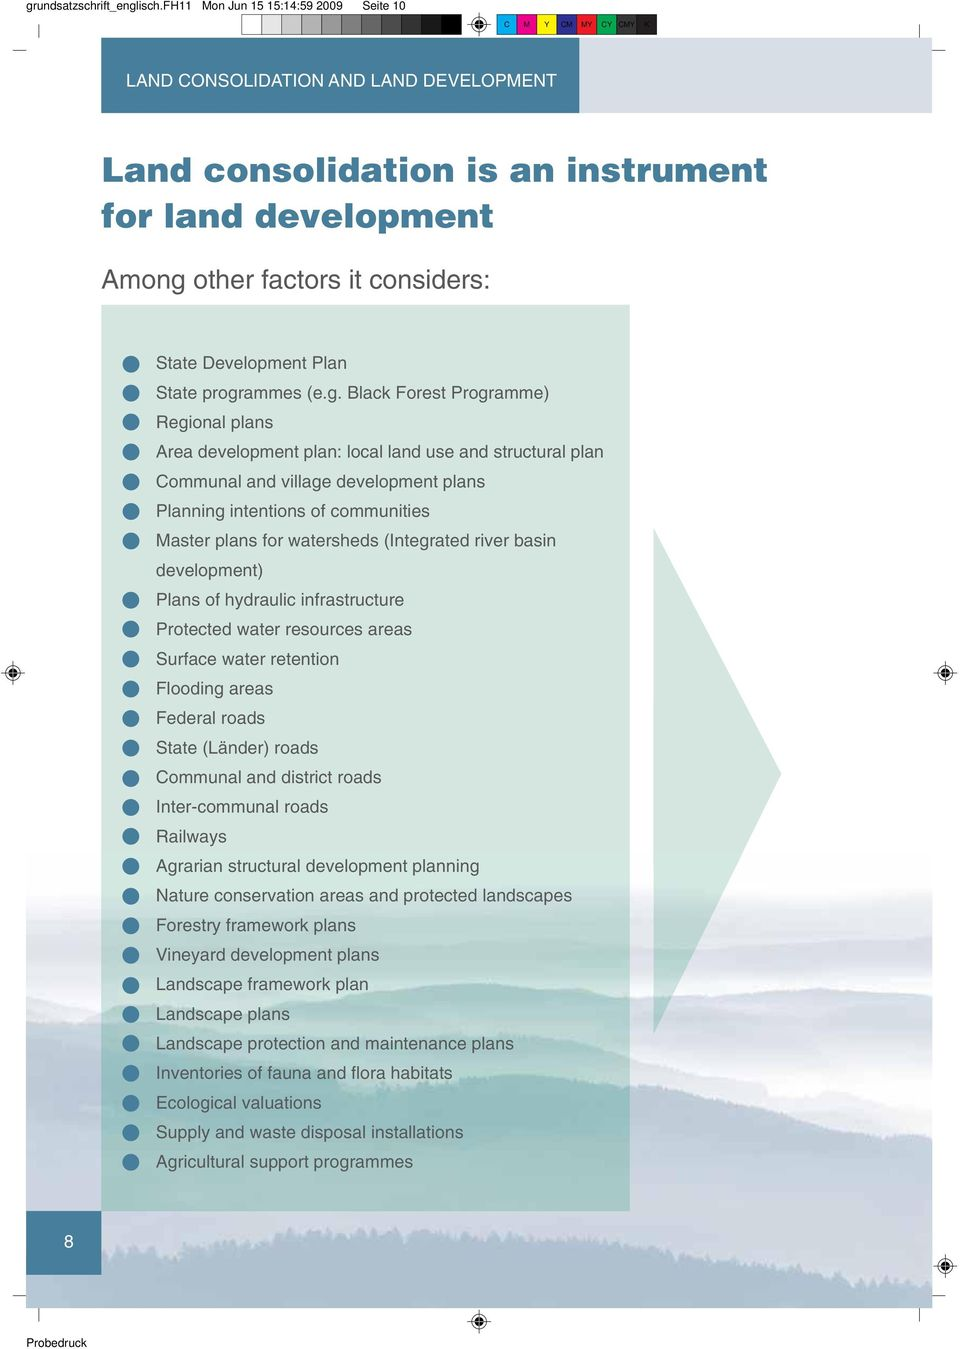 programmes (e.g. Black Forest Programme) Regional plans Area development plan: local land use and structural plan Communal and village development plans Planning intentions of communities Master